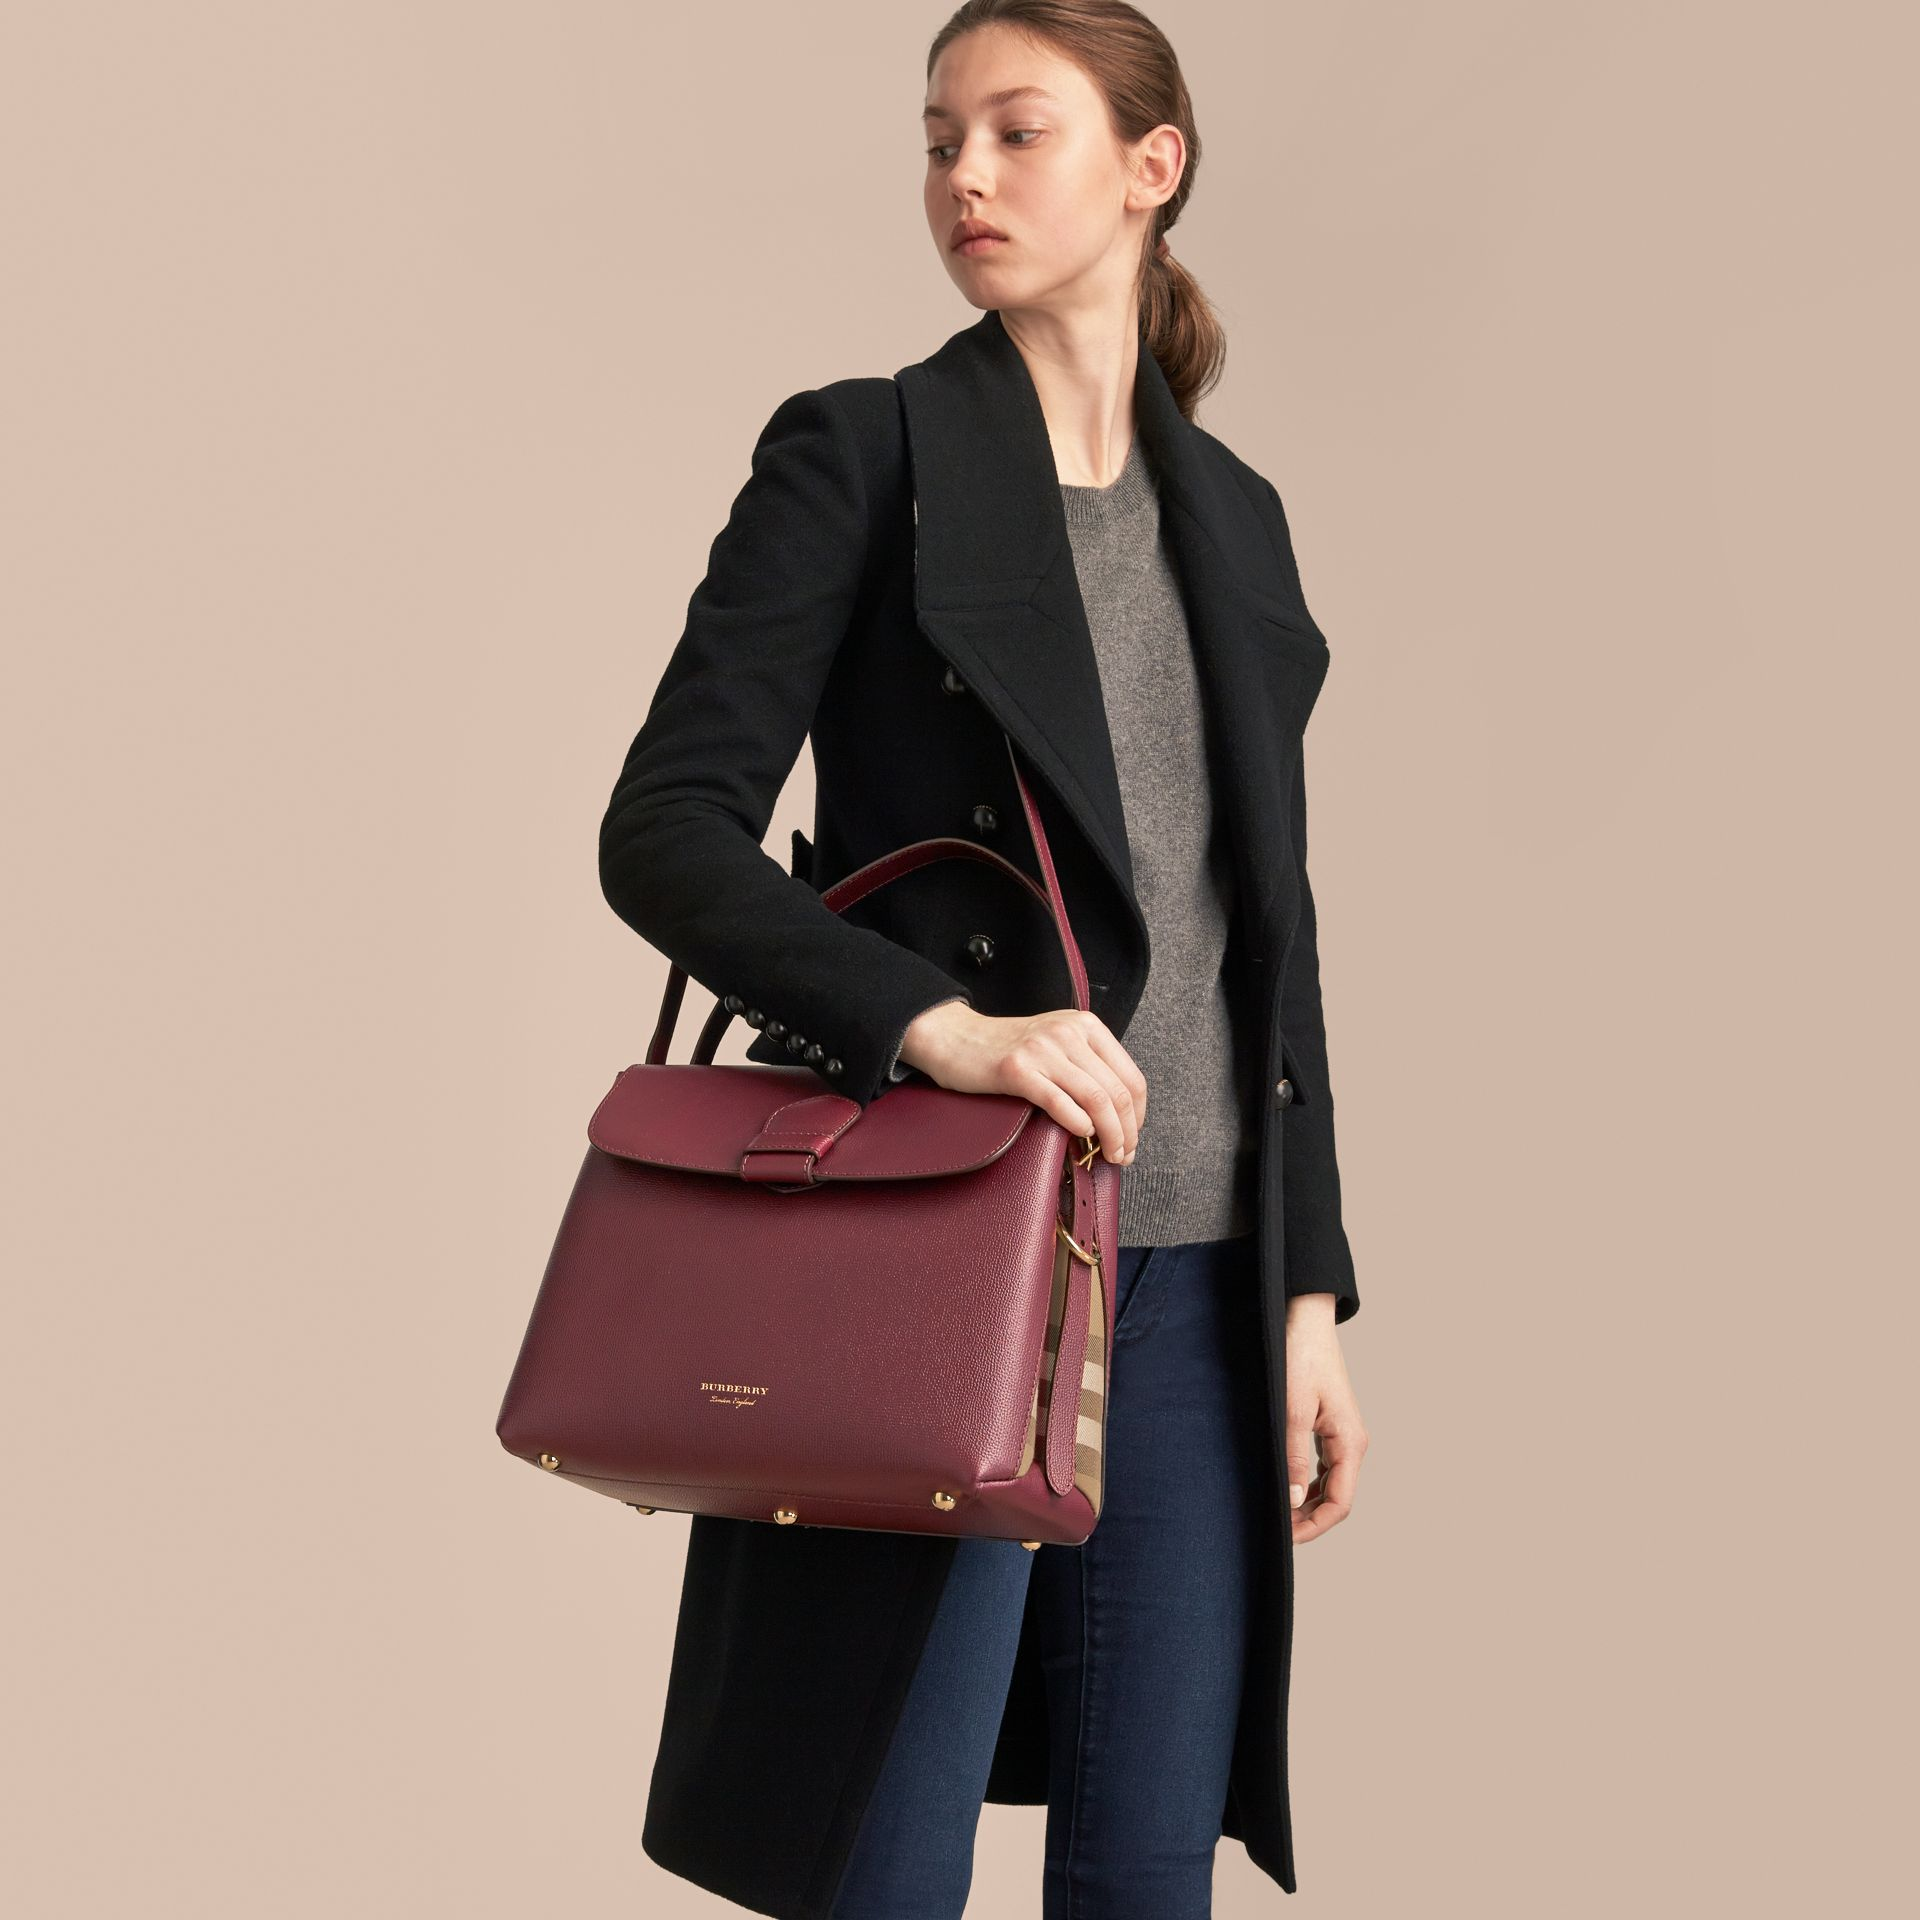 Medium Grainy Leather and House Check Tote Bag in Mahogany Red - Women | Burberry - gallery image 2